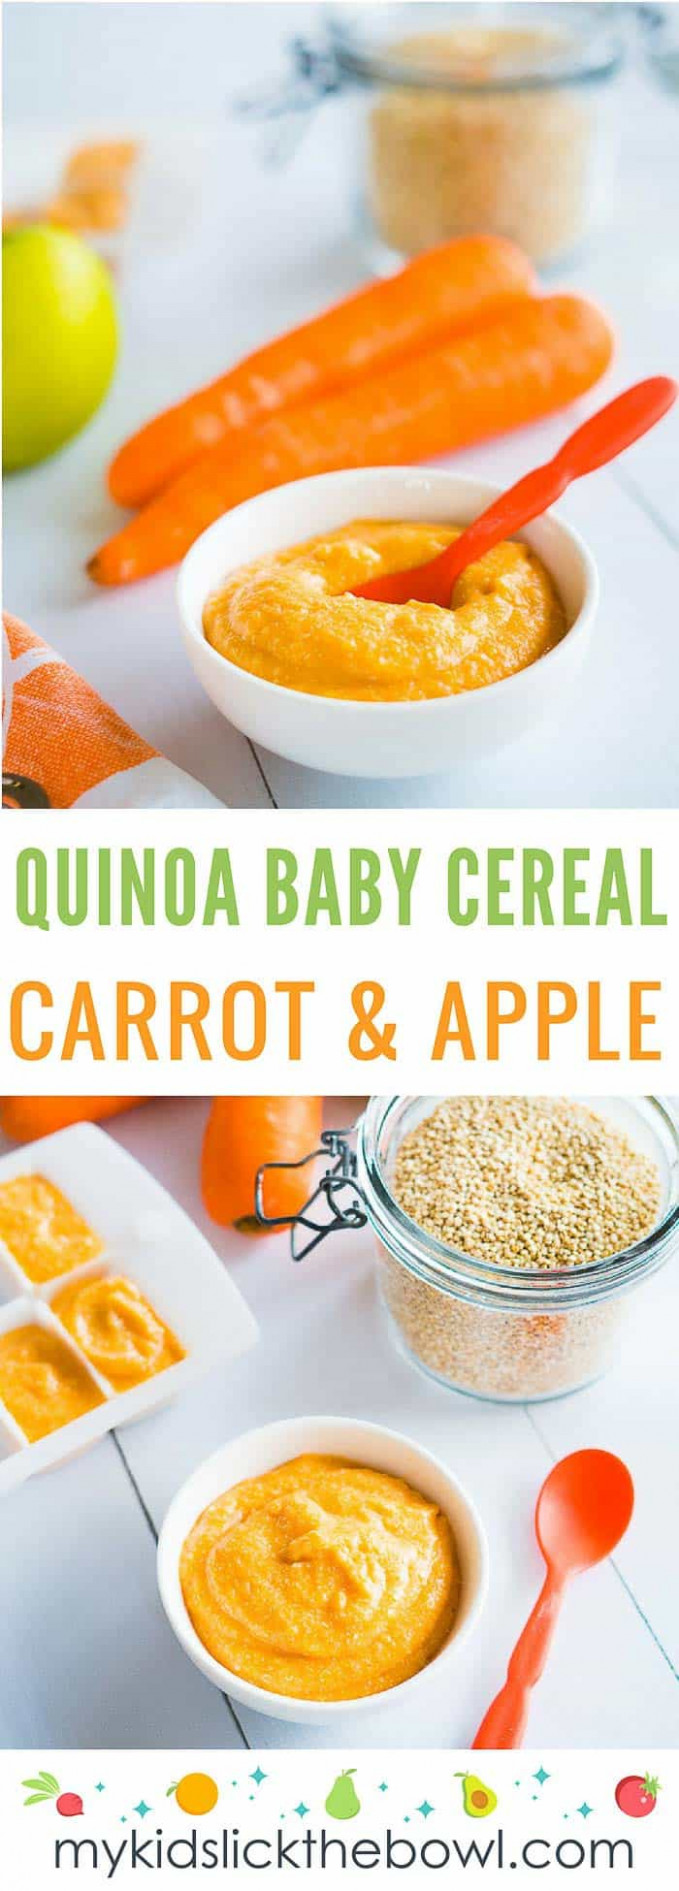 Quinoa Baby Cereal - Carrot & Apple - baby food recipes